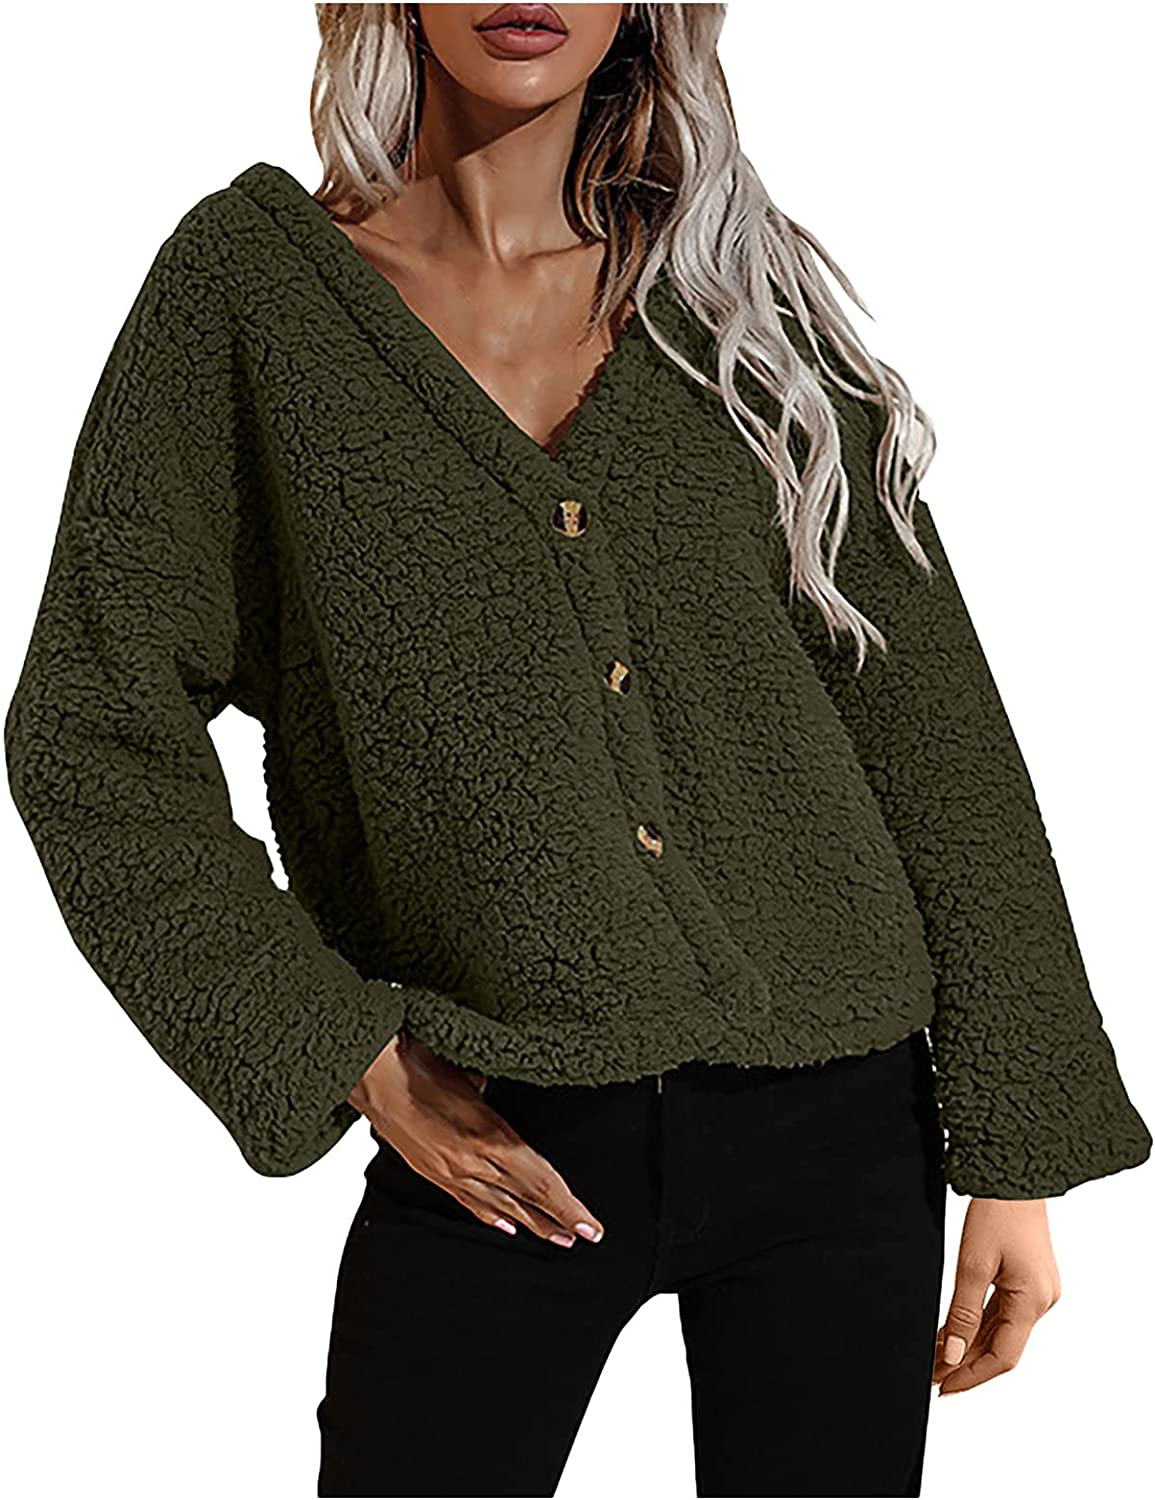 Women Warm Outwear V-Neck Long Sleeve Pullover Fuzzy Solid Color Tops Fashion Winter Loose Sweatshirts